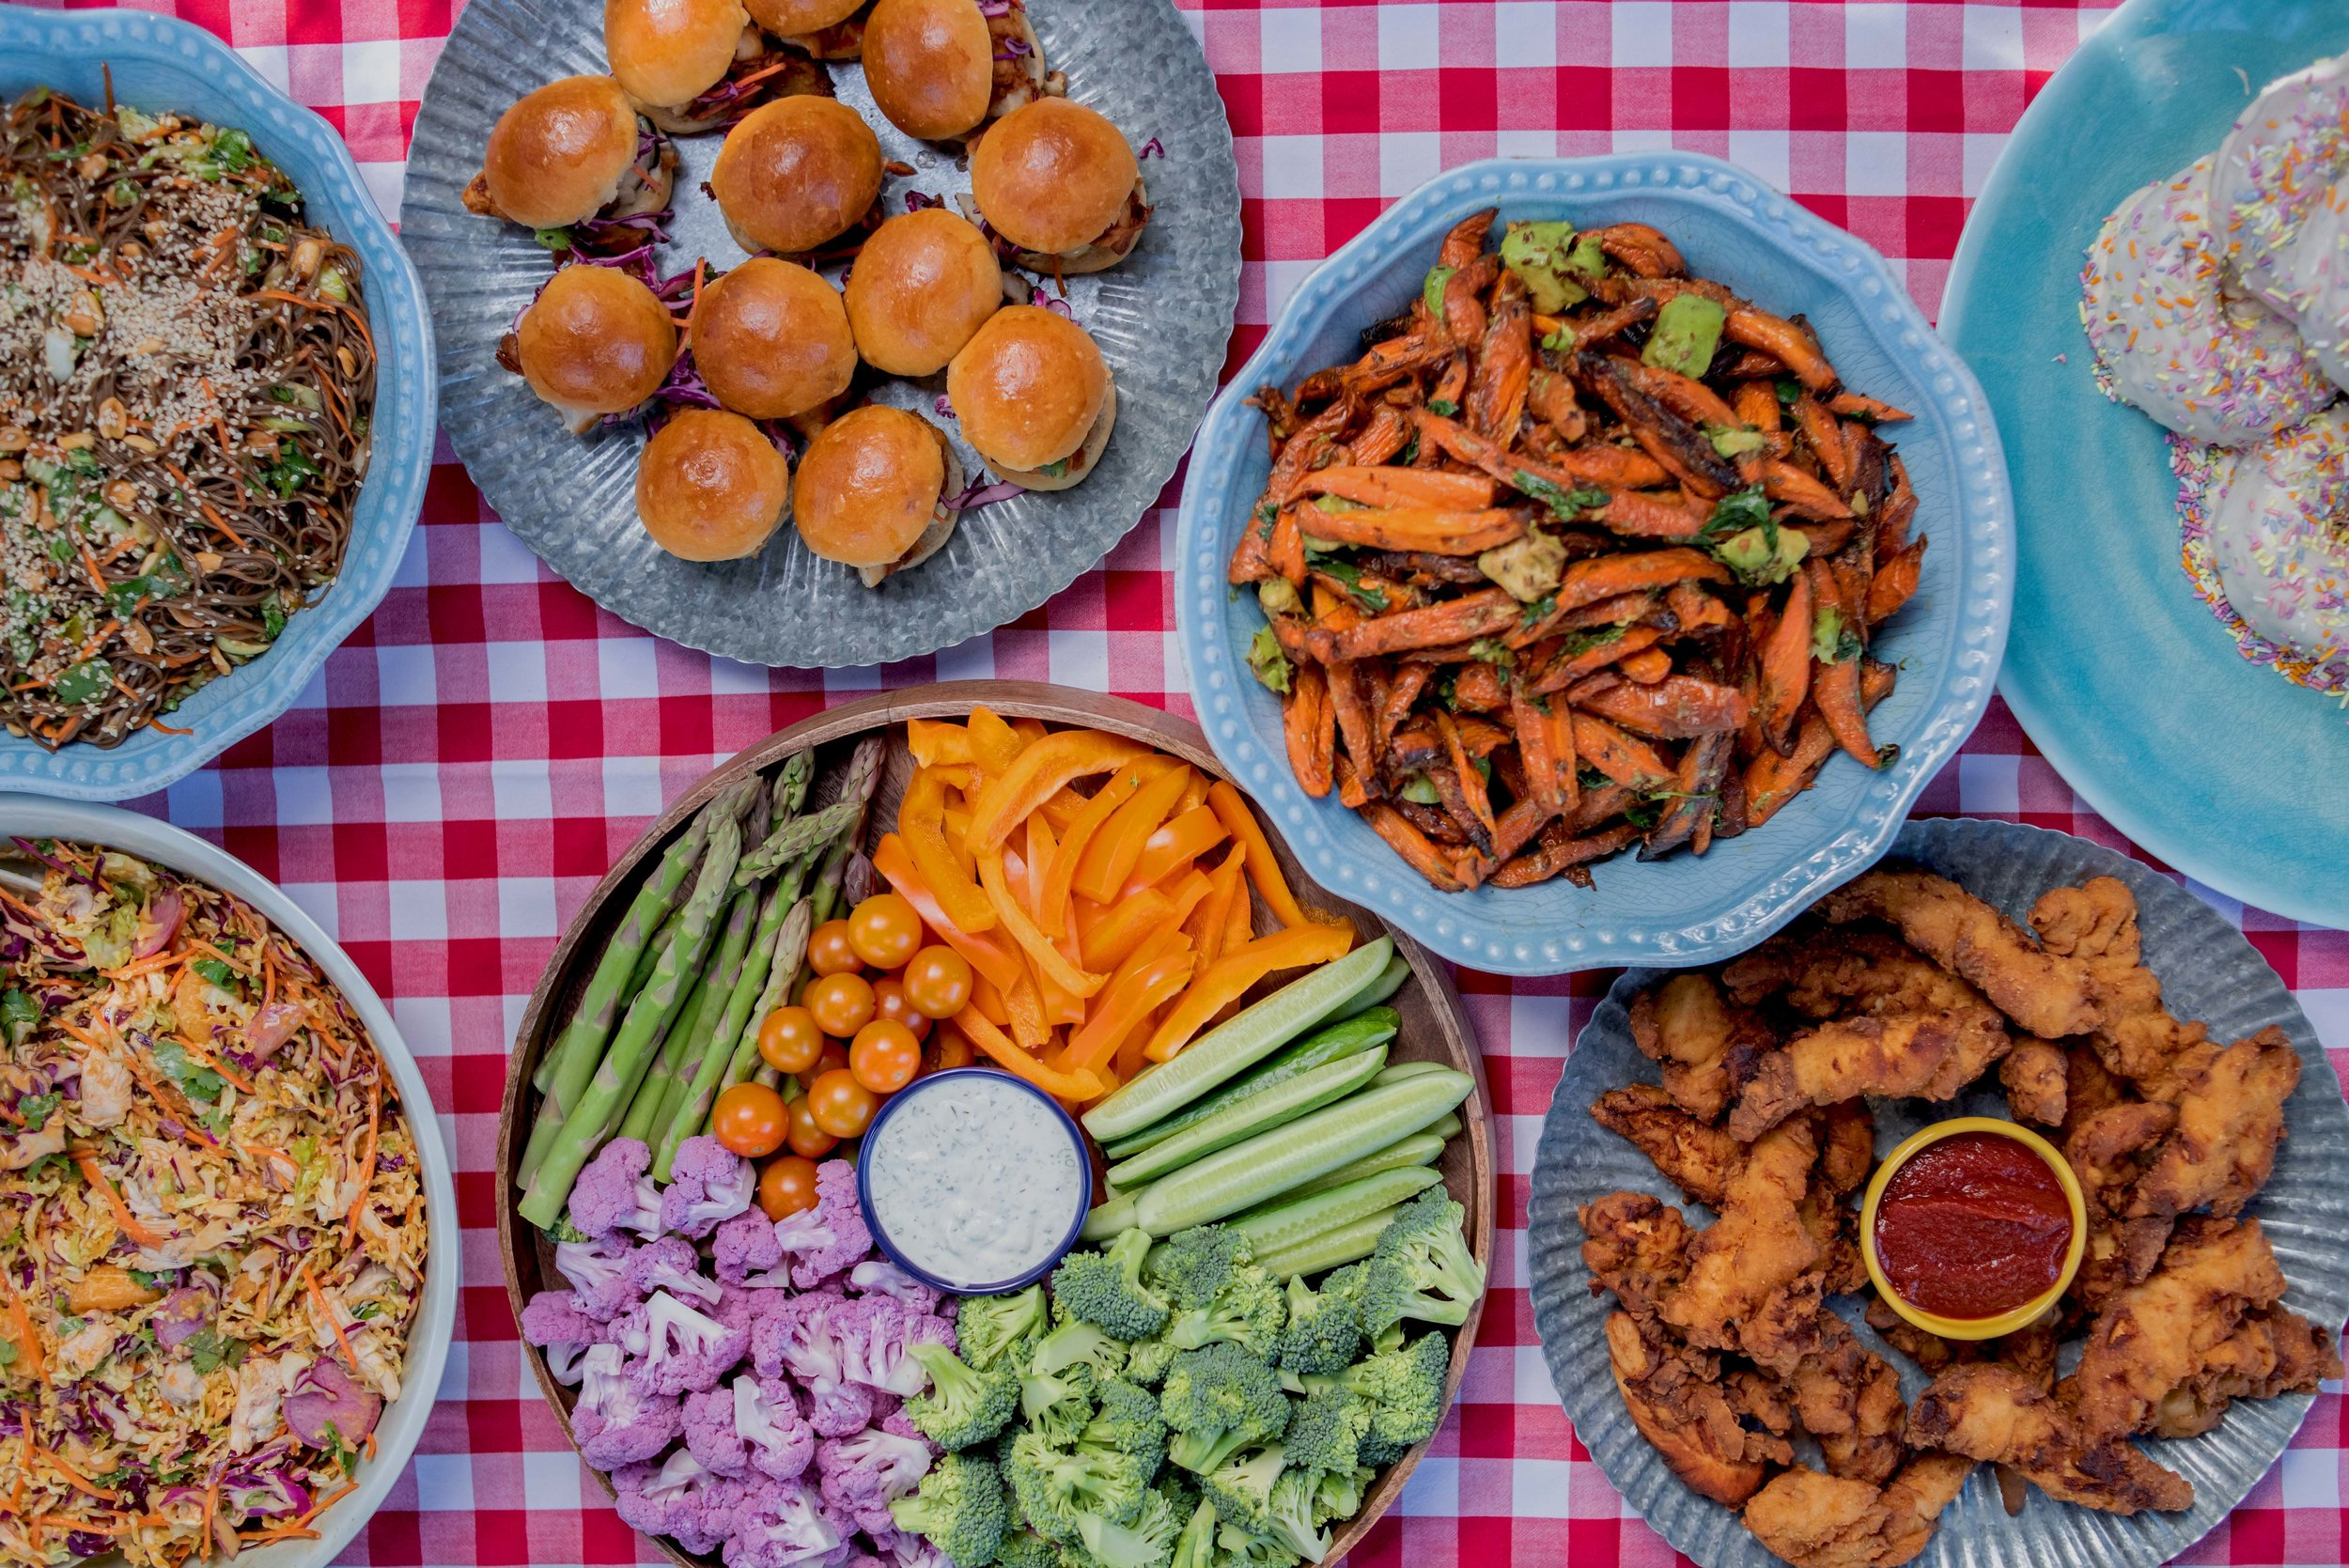 Huckleberry Catering Spread_Photo Credit Abby Mahler.jpg